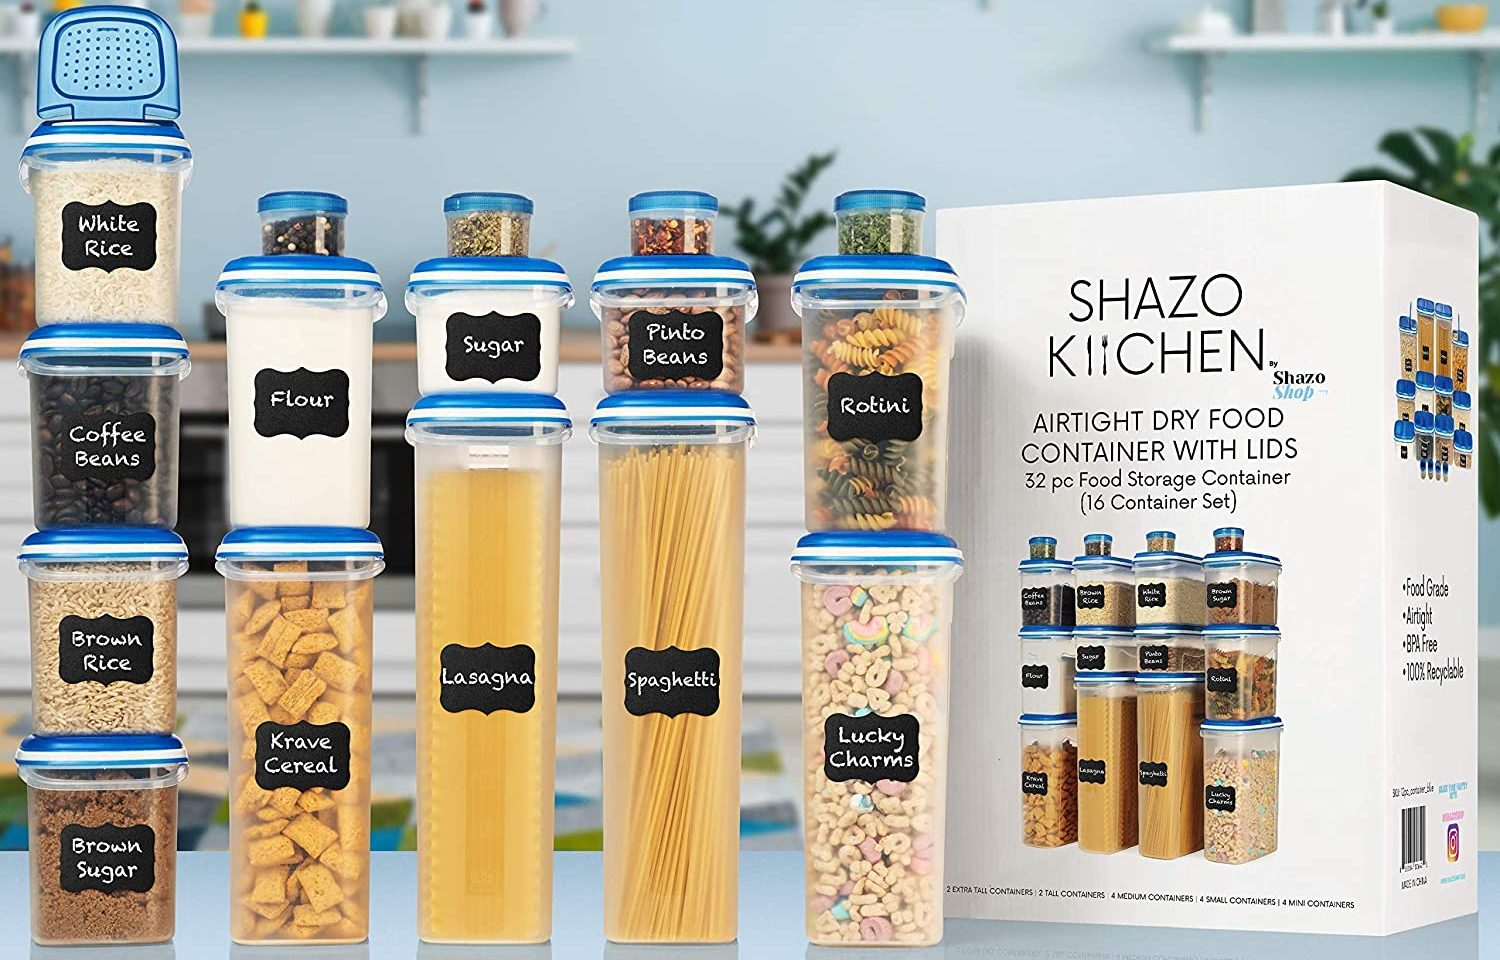 Shazo 32 pc (16 Container Set) Airtight Food Storage Containers with Lids